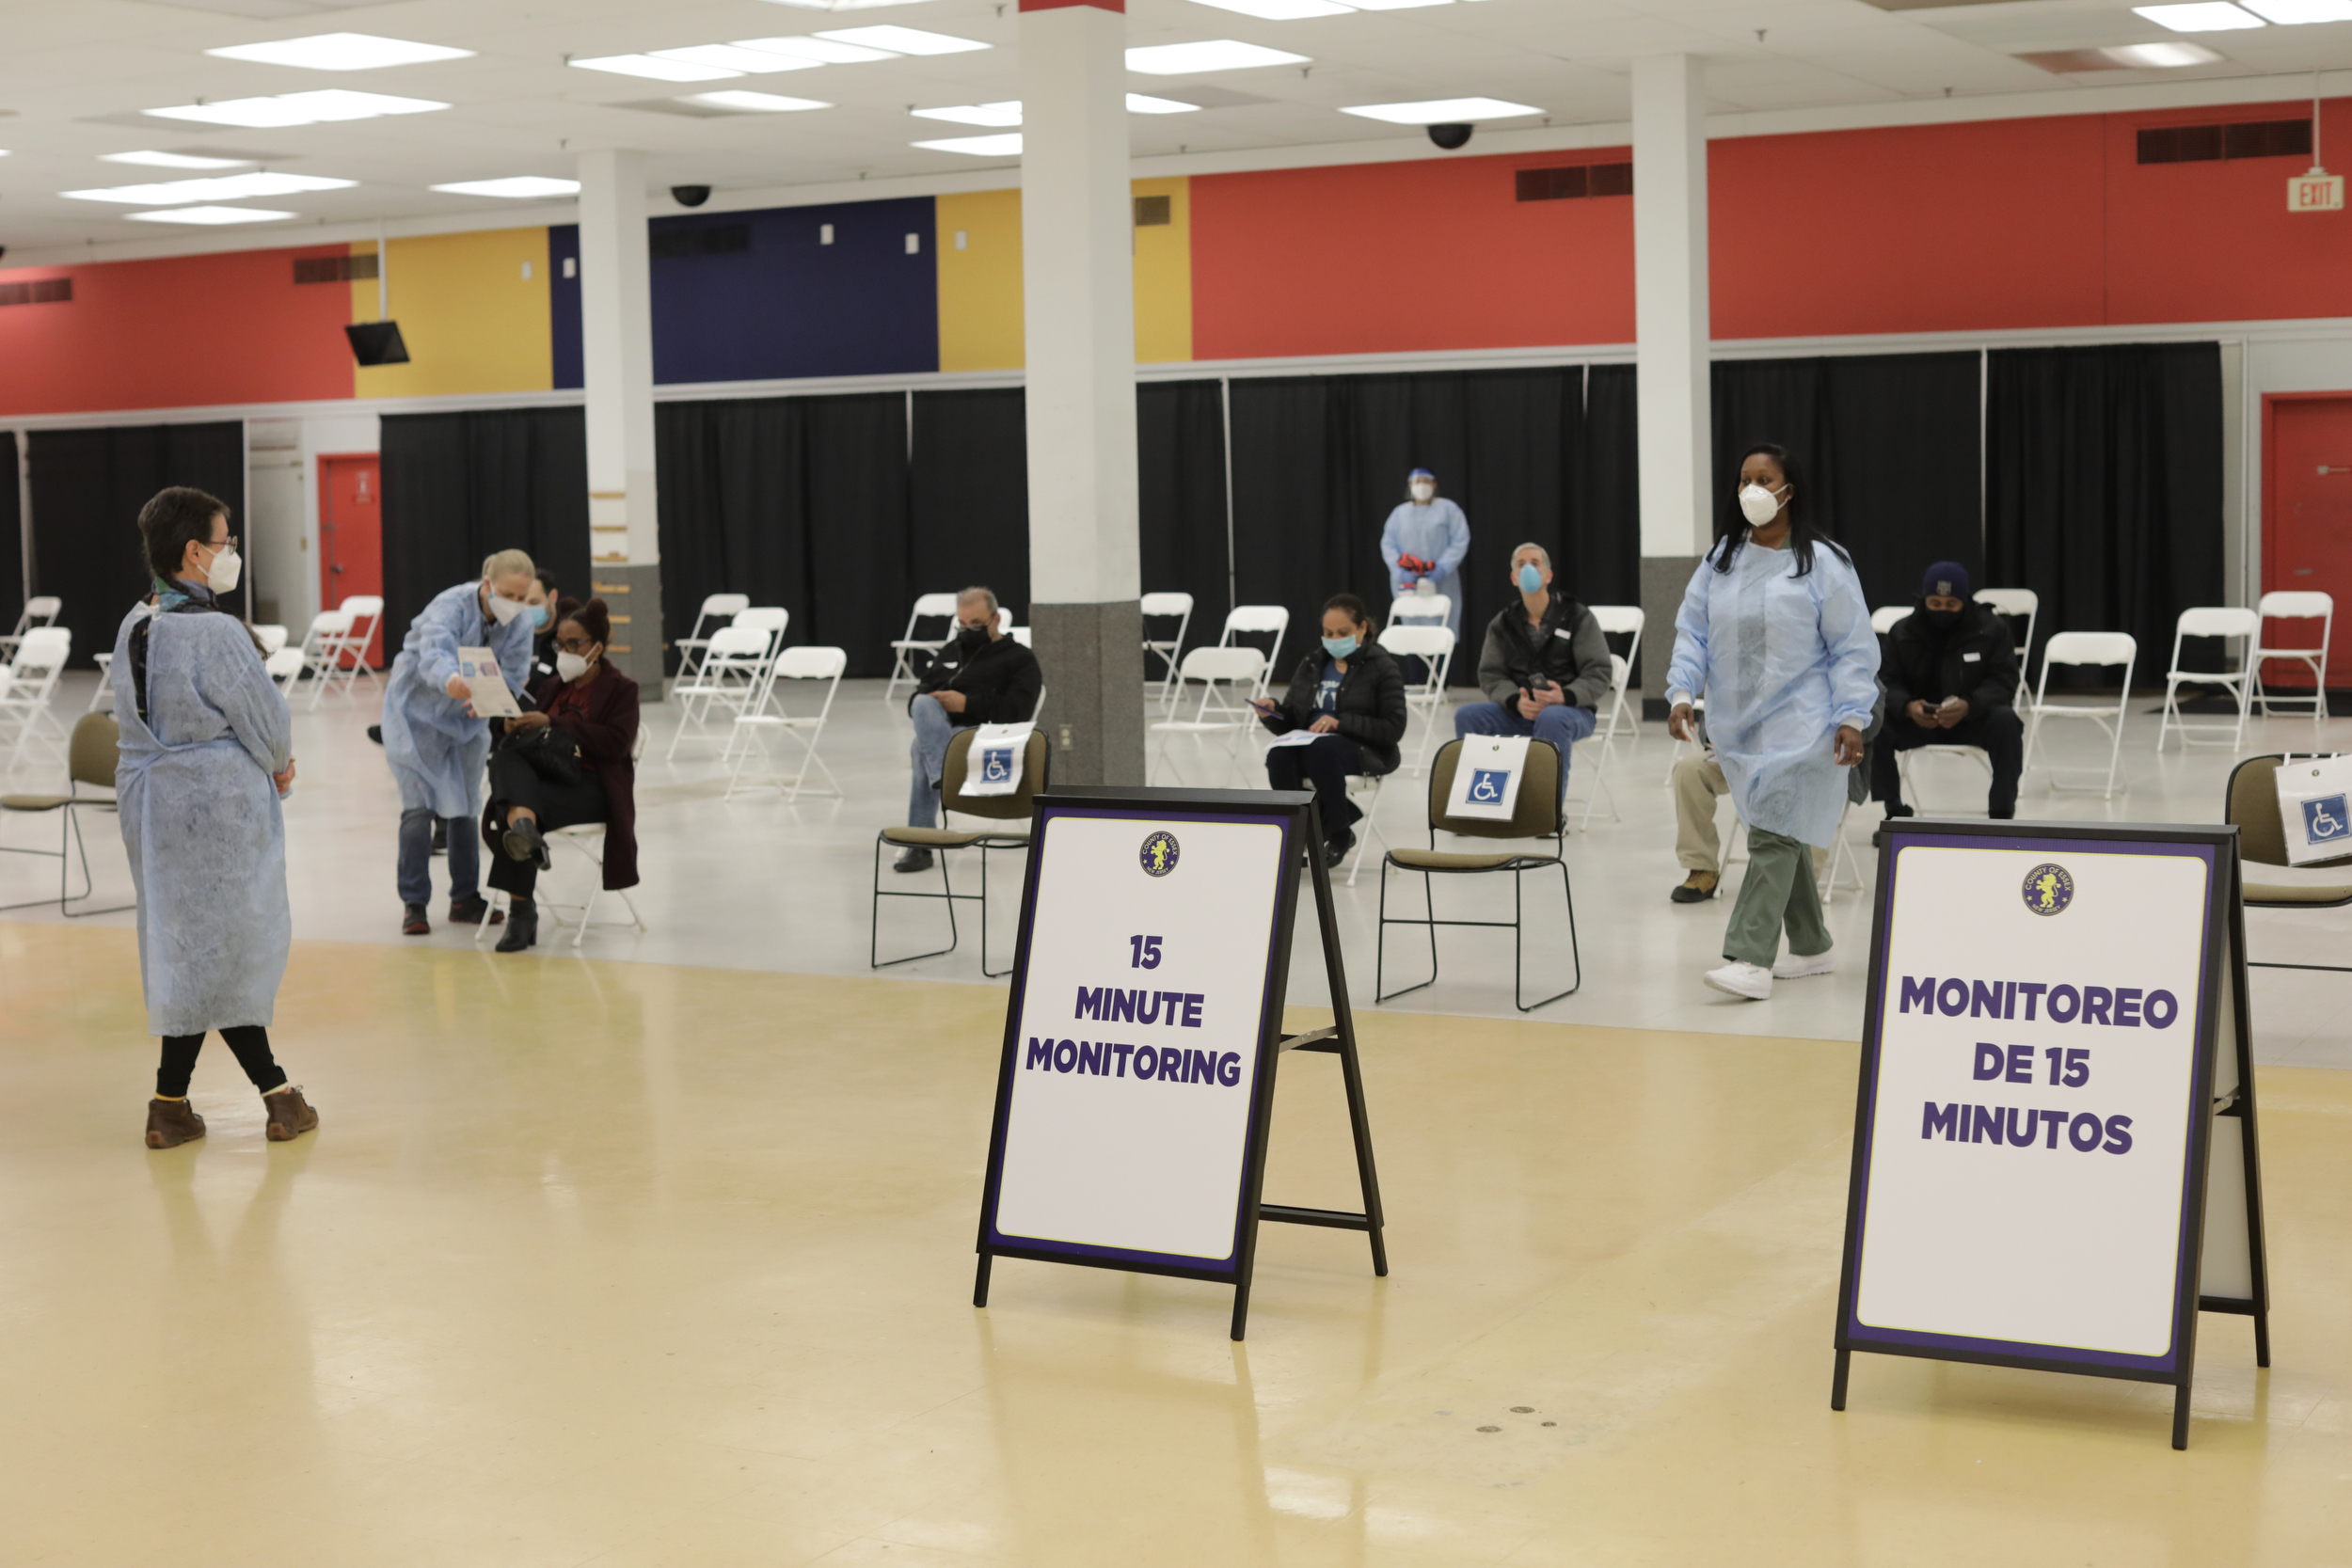 Health care workers station te Essex County Vaccination Site